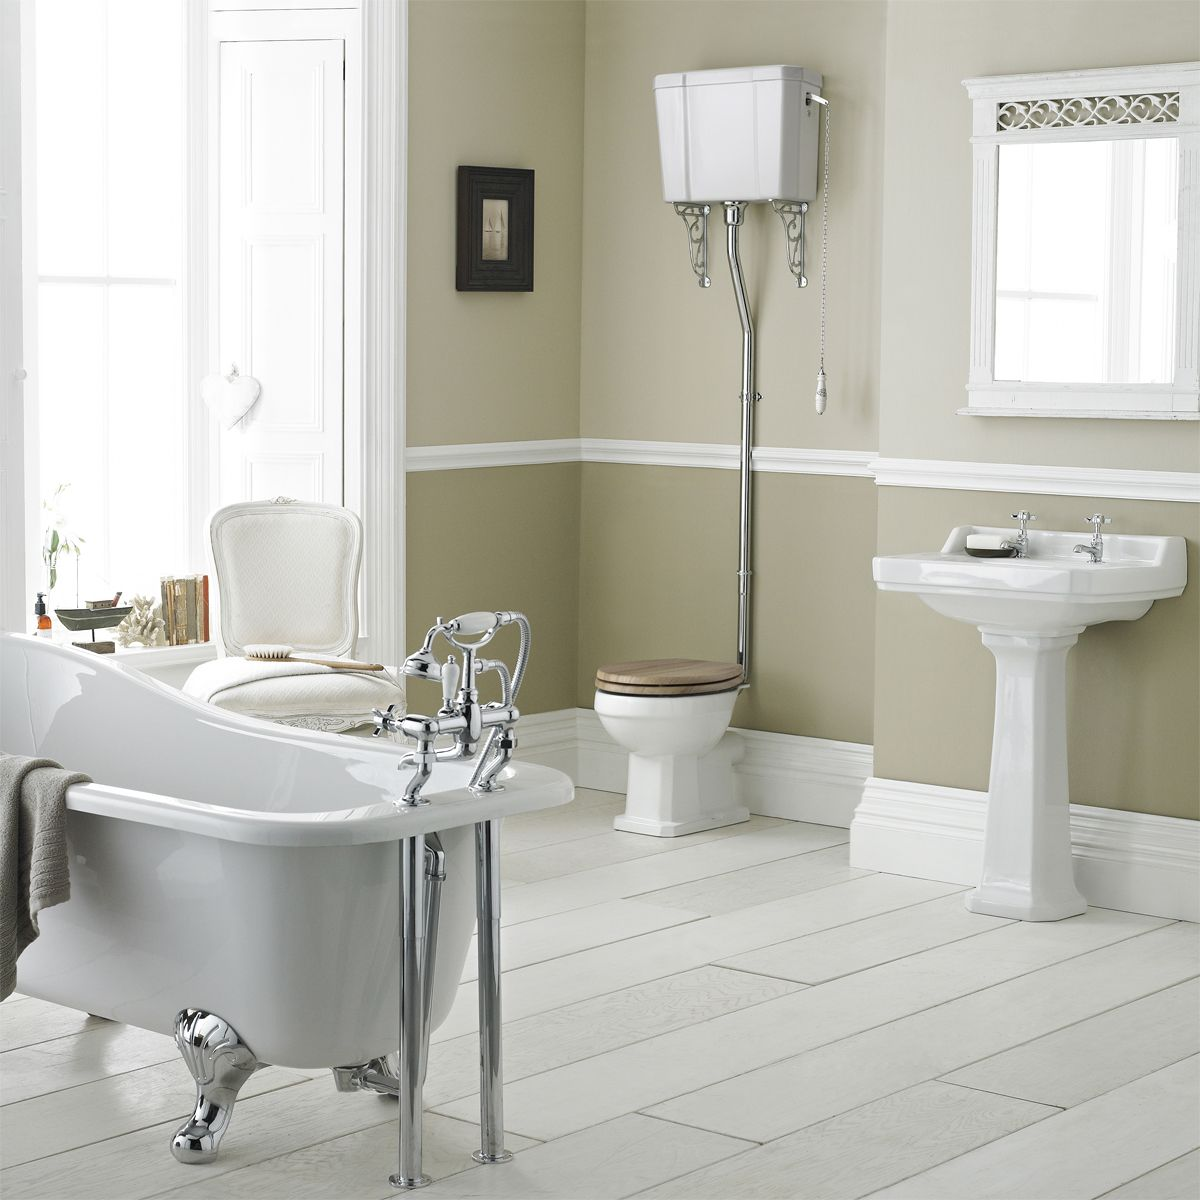 Hudson Reed Richmond Traditional High Level Bathroom Suite with Slipper Bath